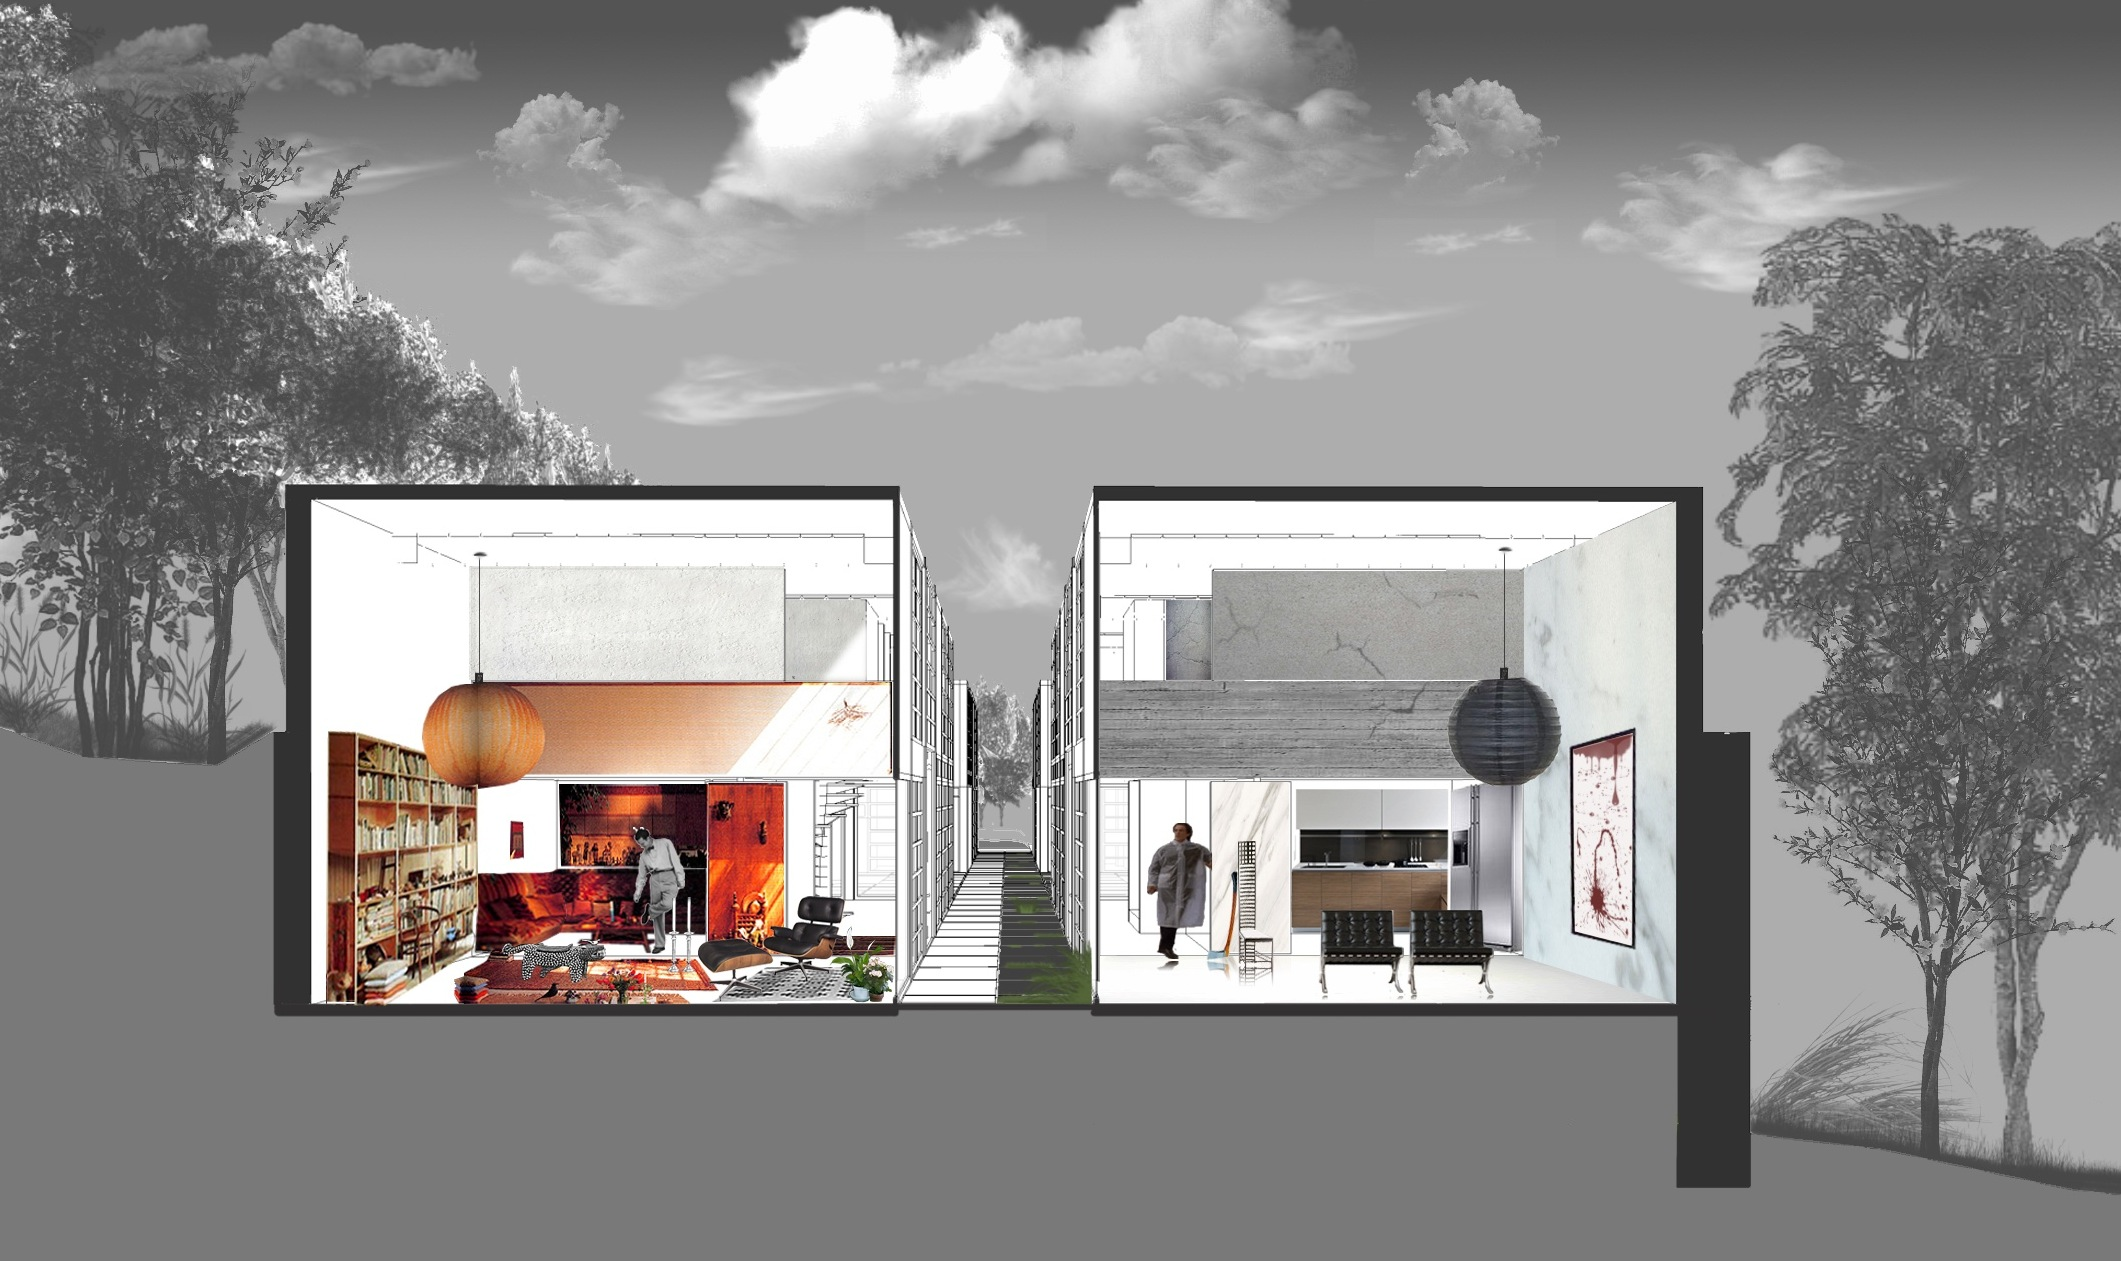 Aa school of architecture projects review 2011 inter 12 - Living room definition architecture ...